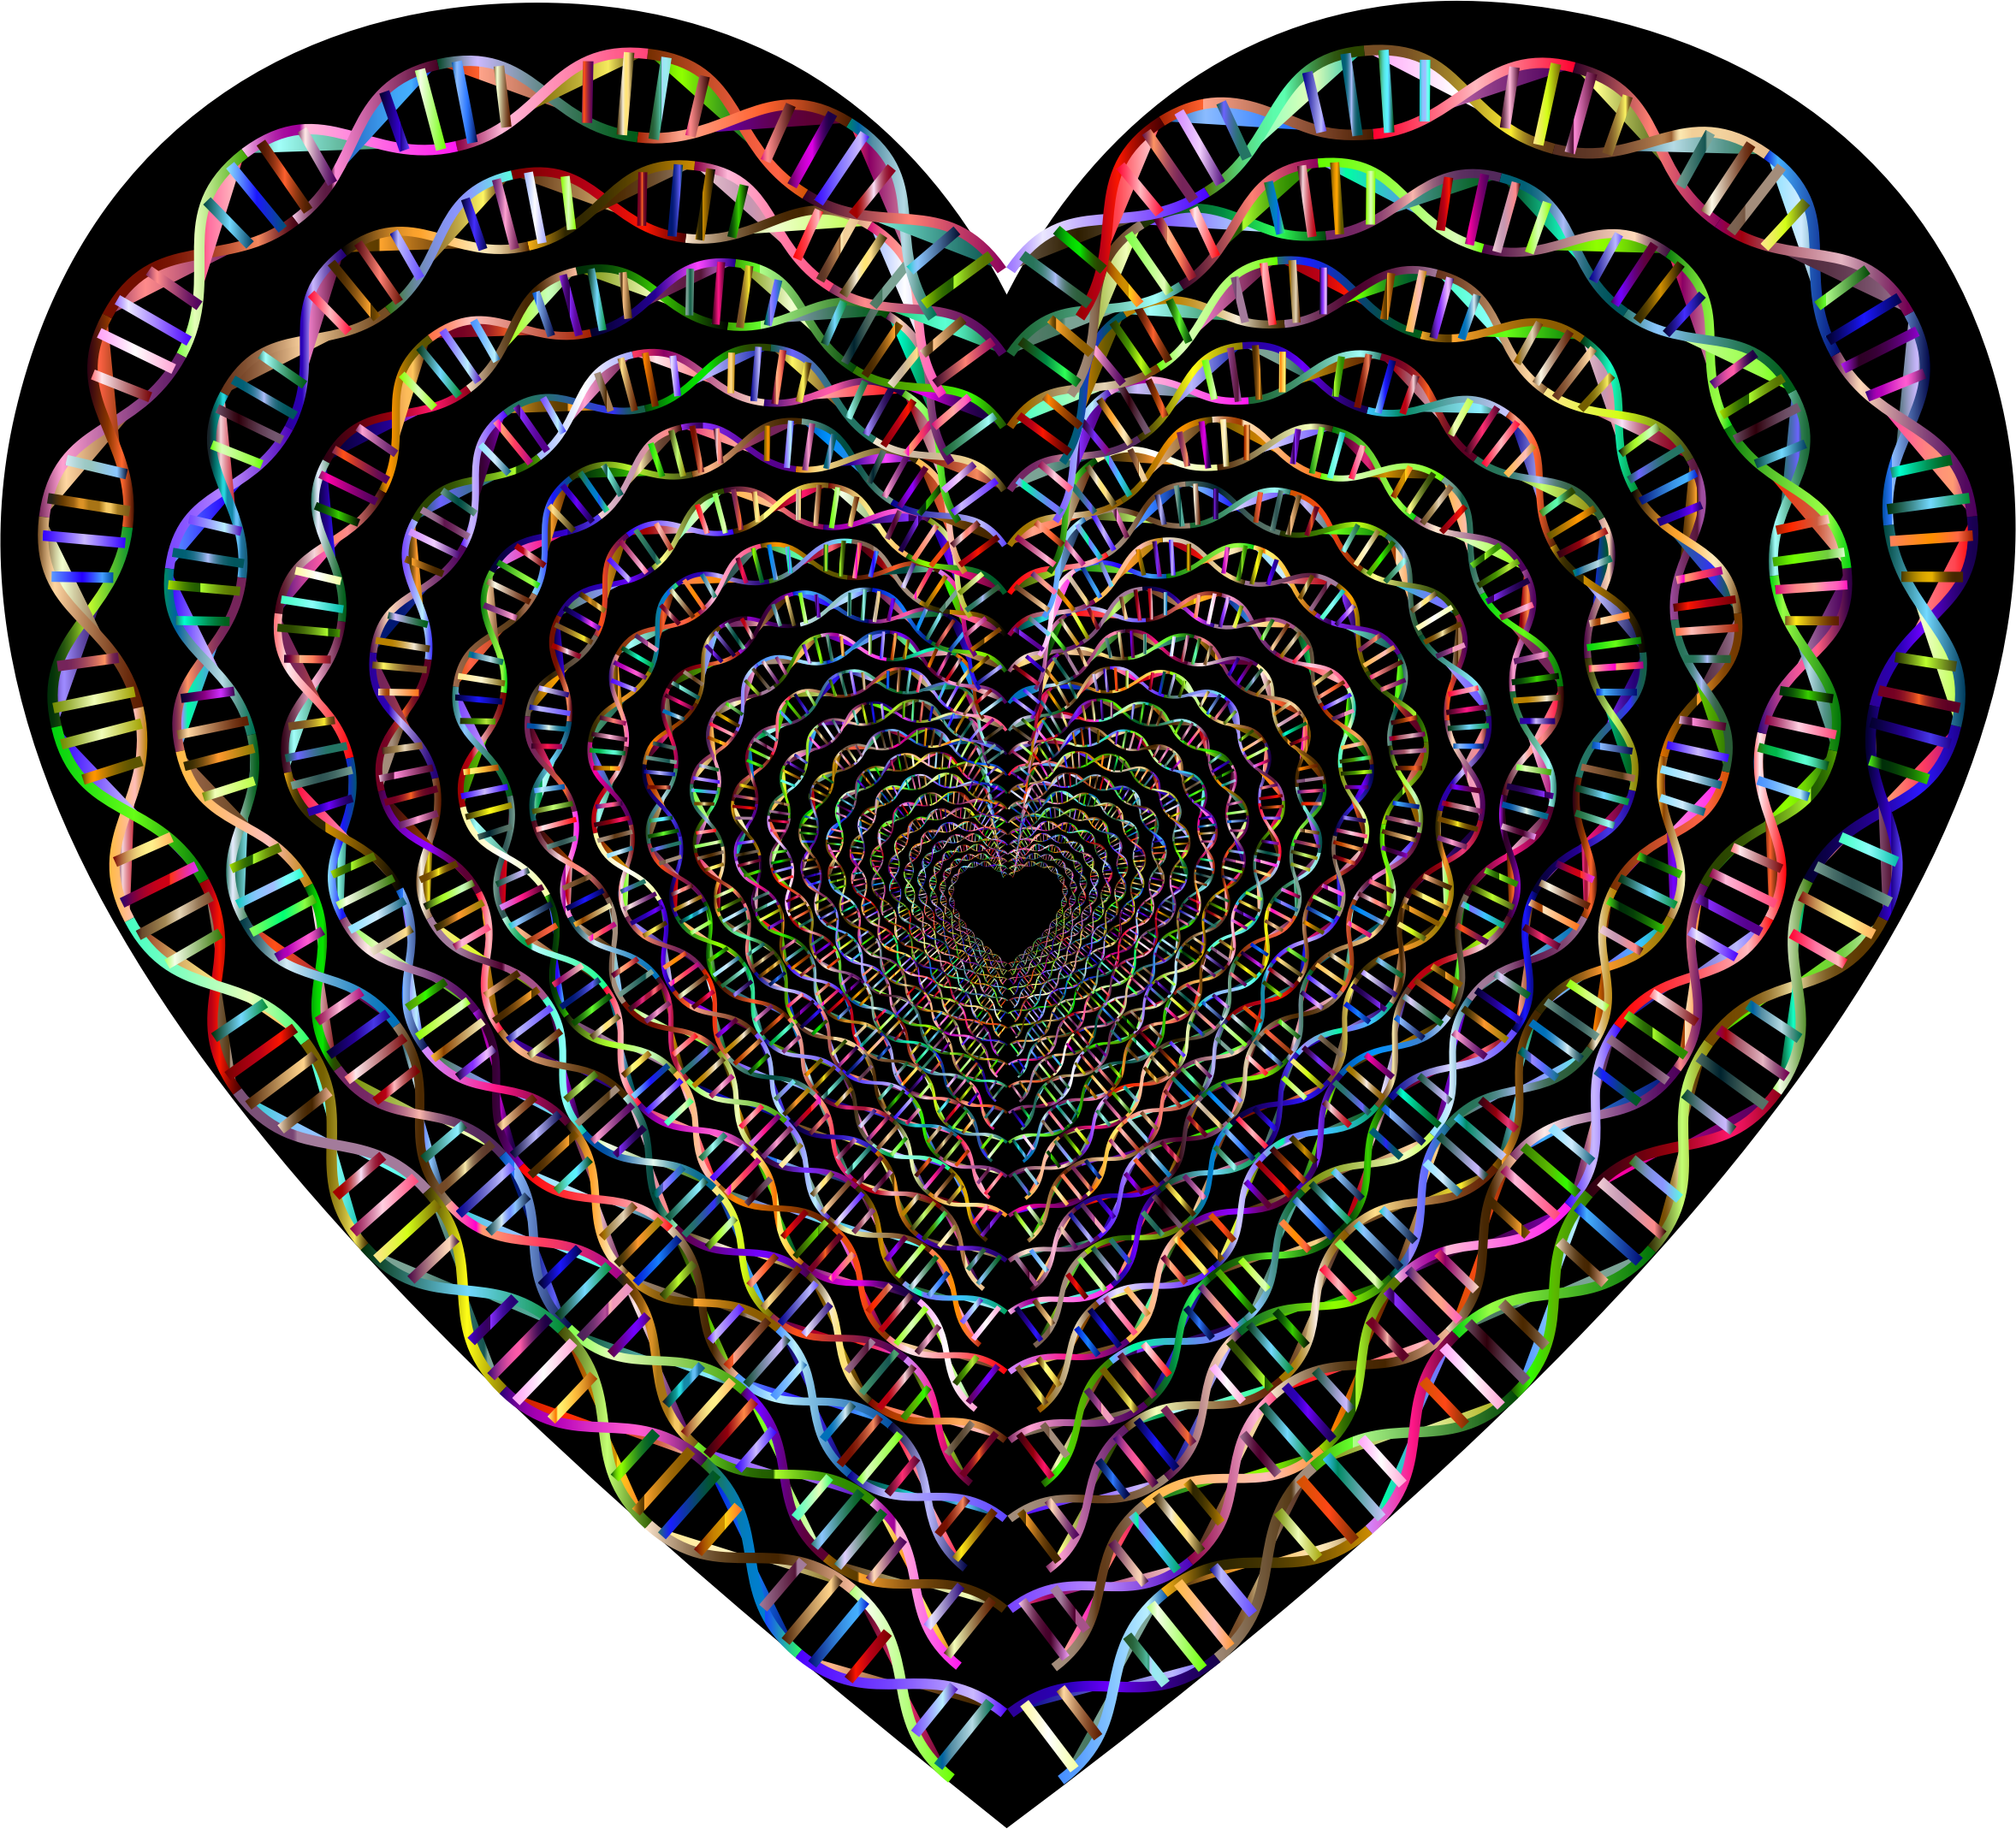 Chromatic DNA Helix Heart Tunnel by GDJ